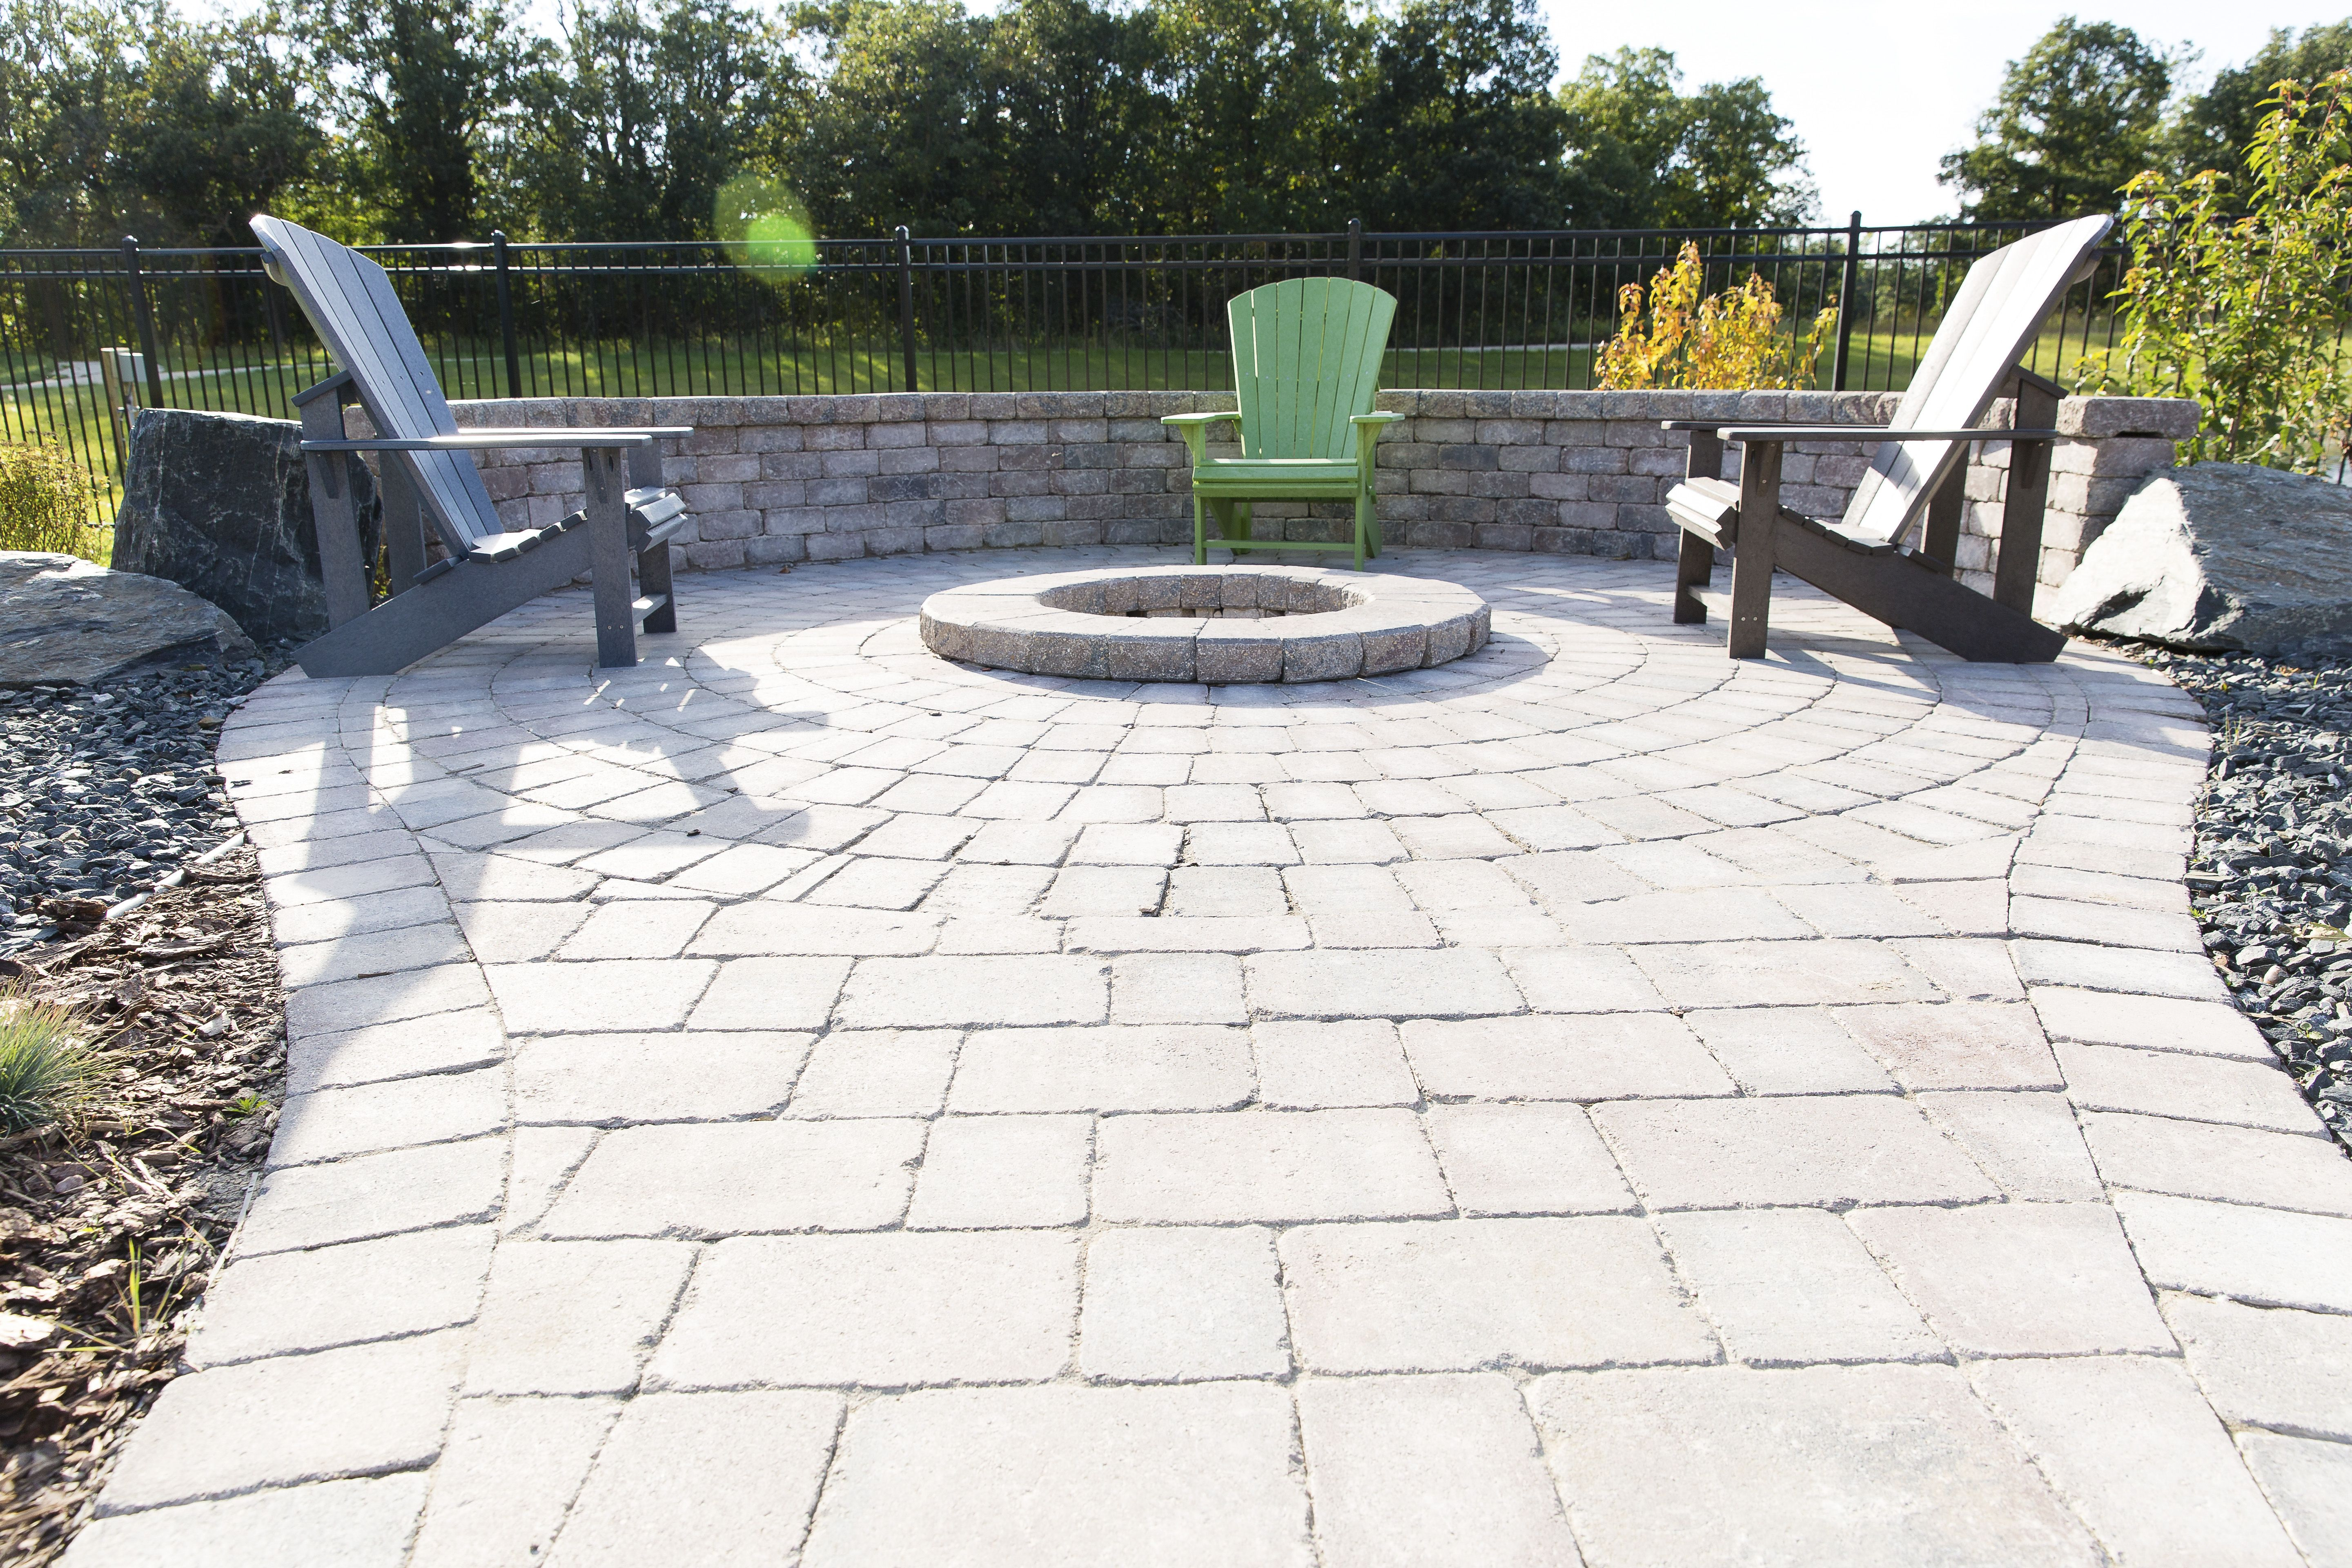 Custom Circle Fire Pit Inlaid In A Roman Paver Patio Paver Patio Outdoor Fire Pit Patio